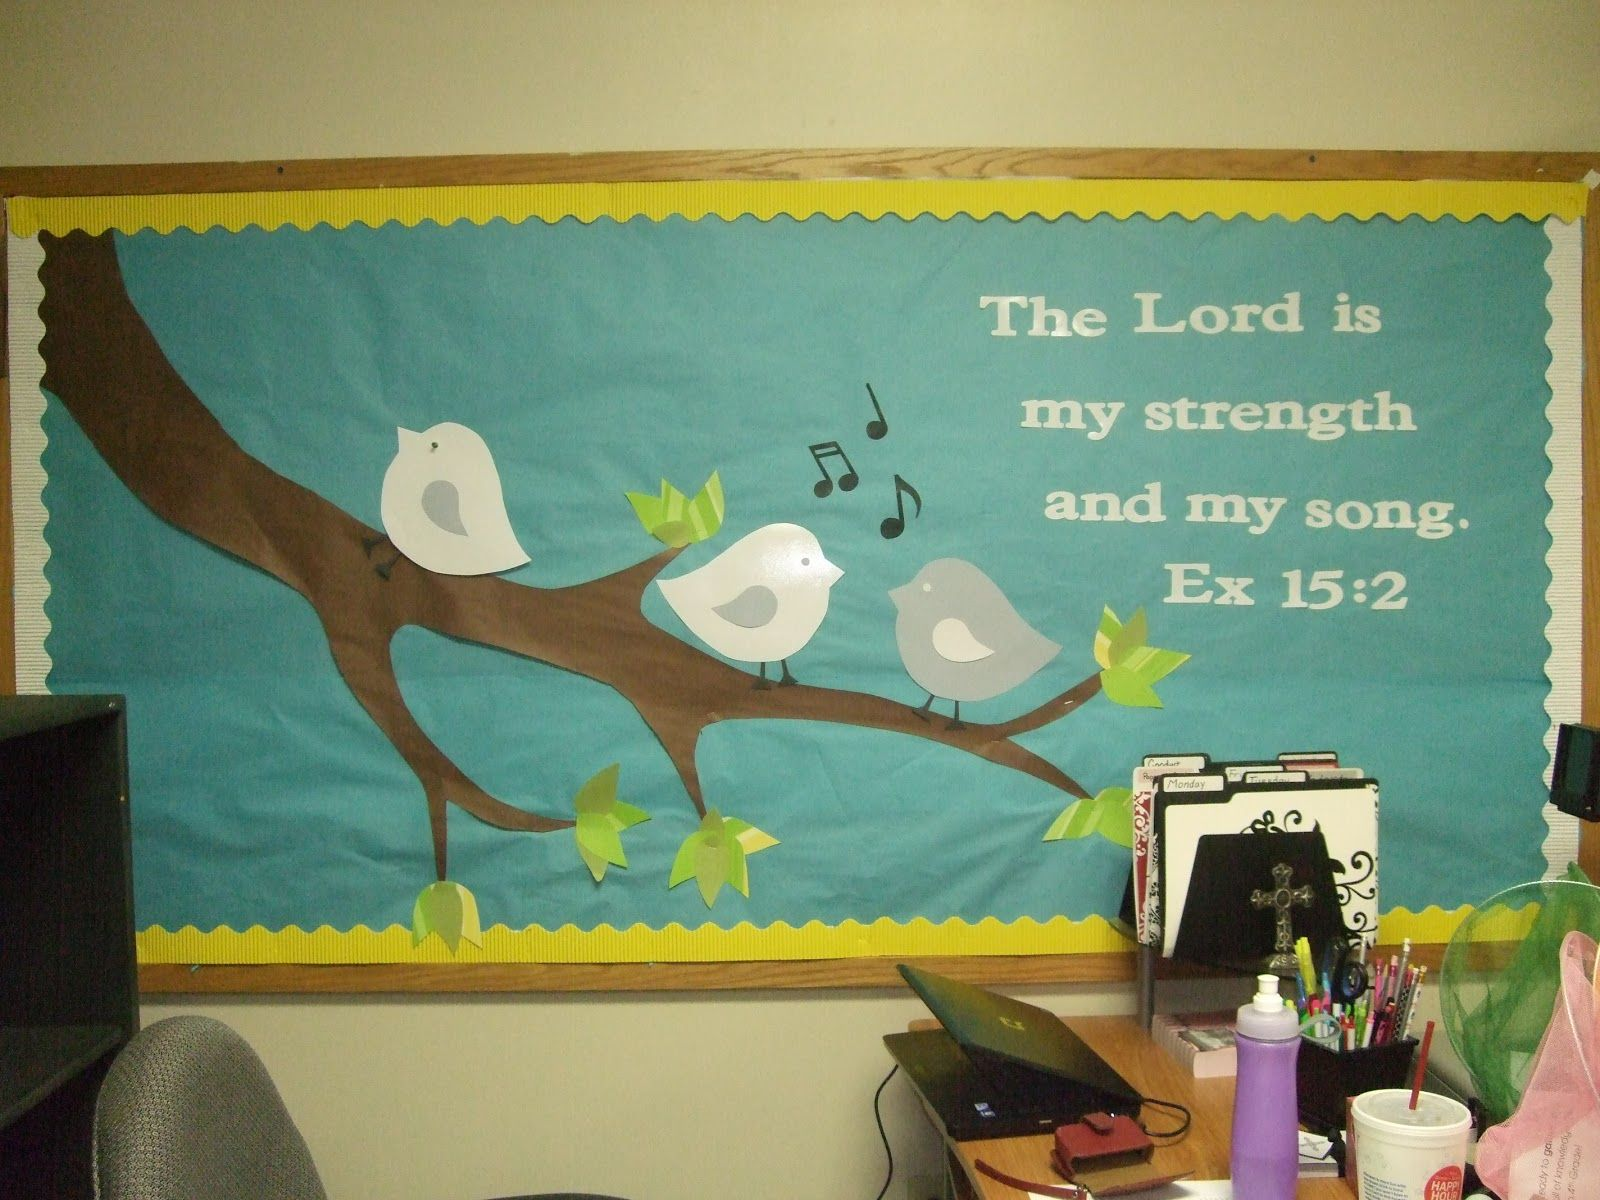 Christian easter bulletin board ideas - Sunday School Bulletin Boards Another Spring Board Tree Branch With Cute Easter Bulletin Boardschristian